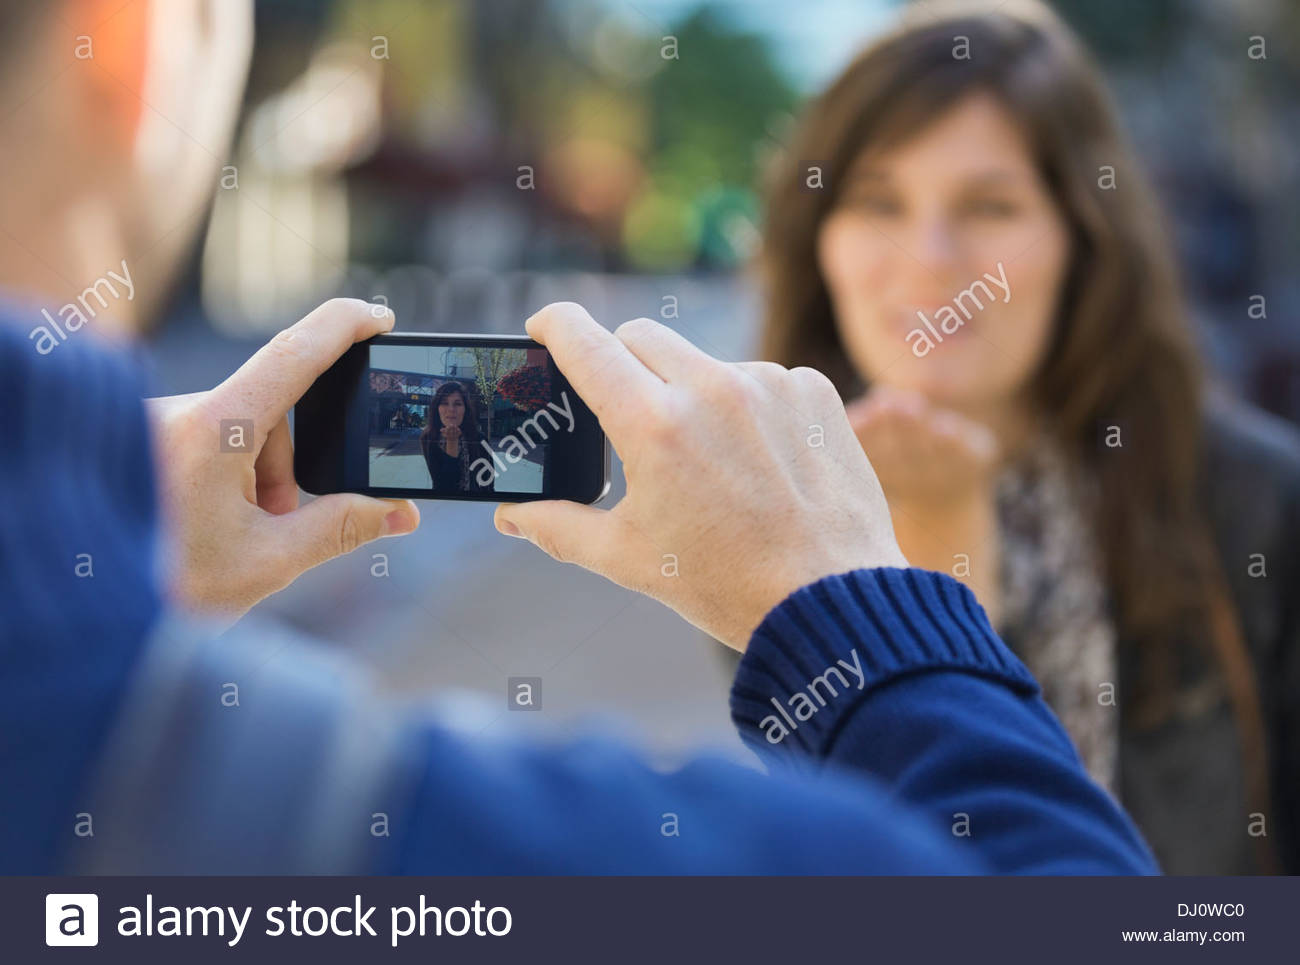 Man showing photo of woman blowing kiss on smart phone - Stock Image